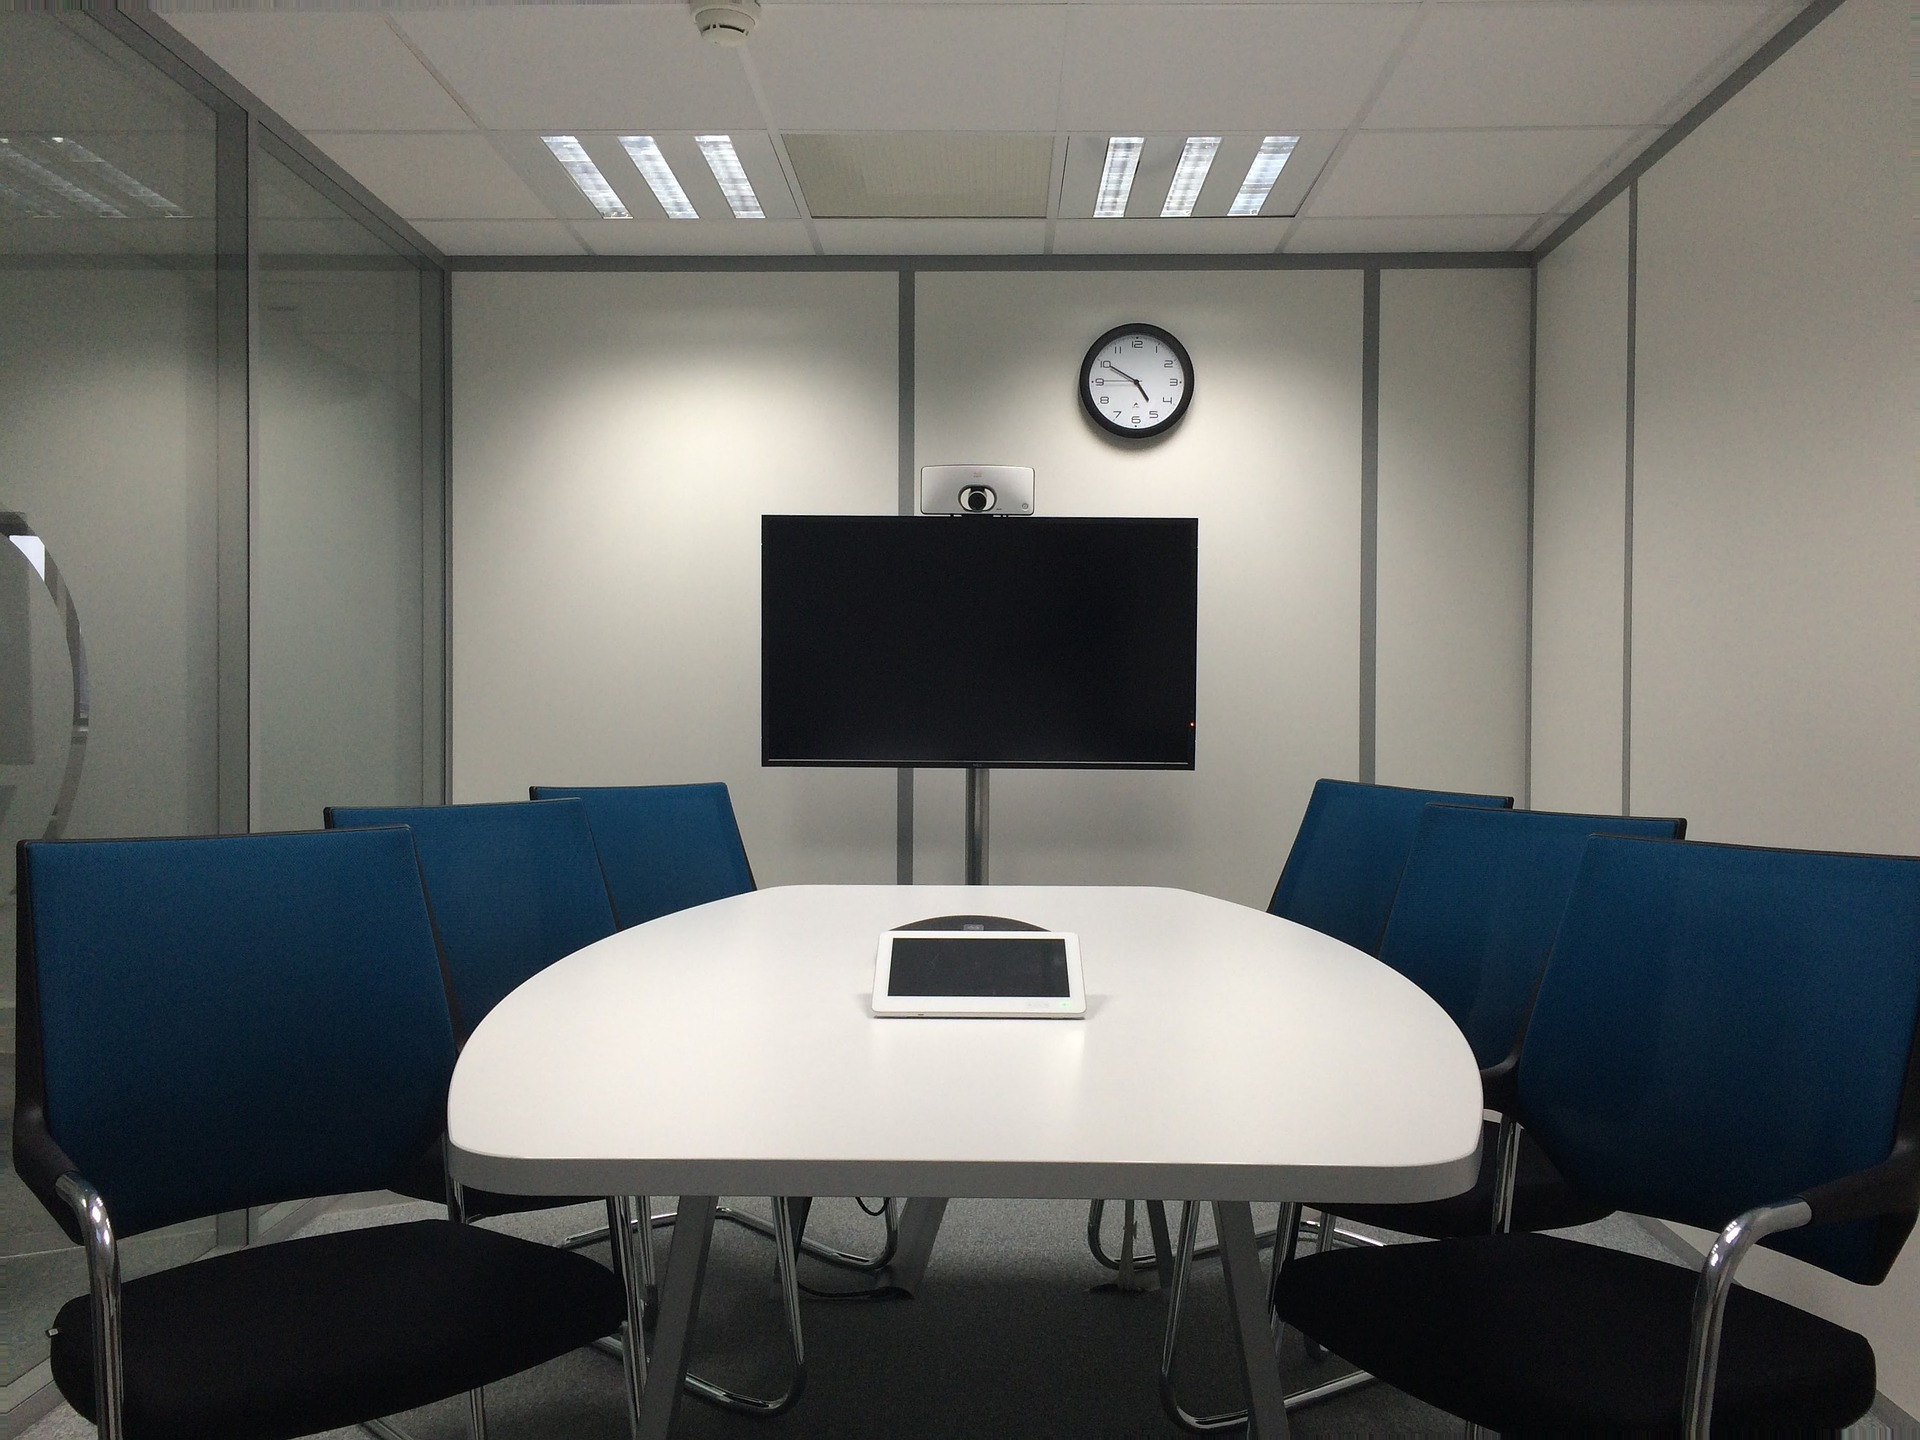 meeting-room-1806702_1920